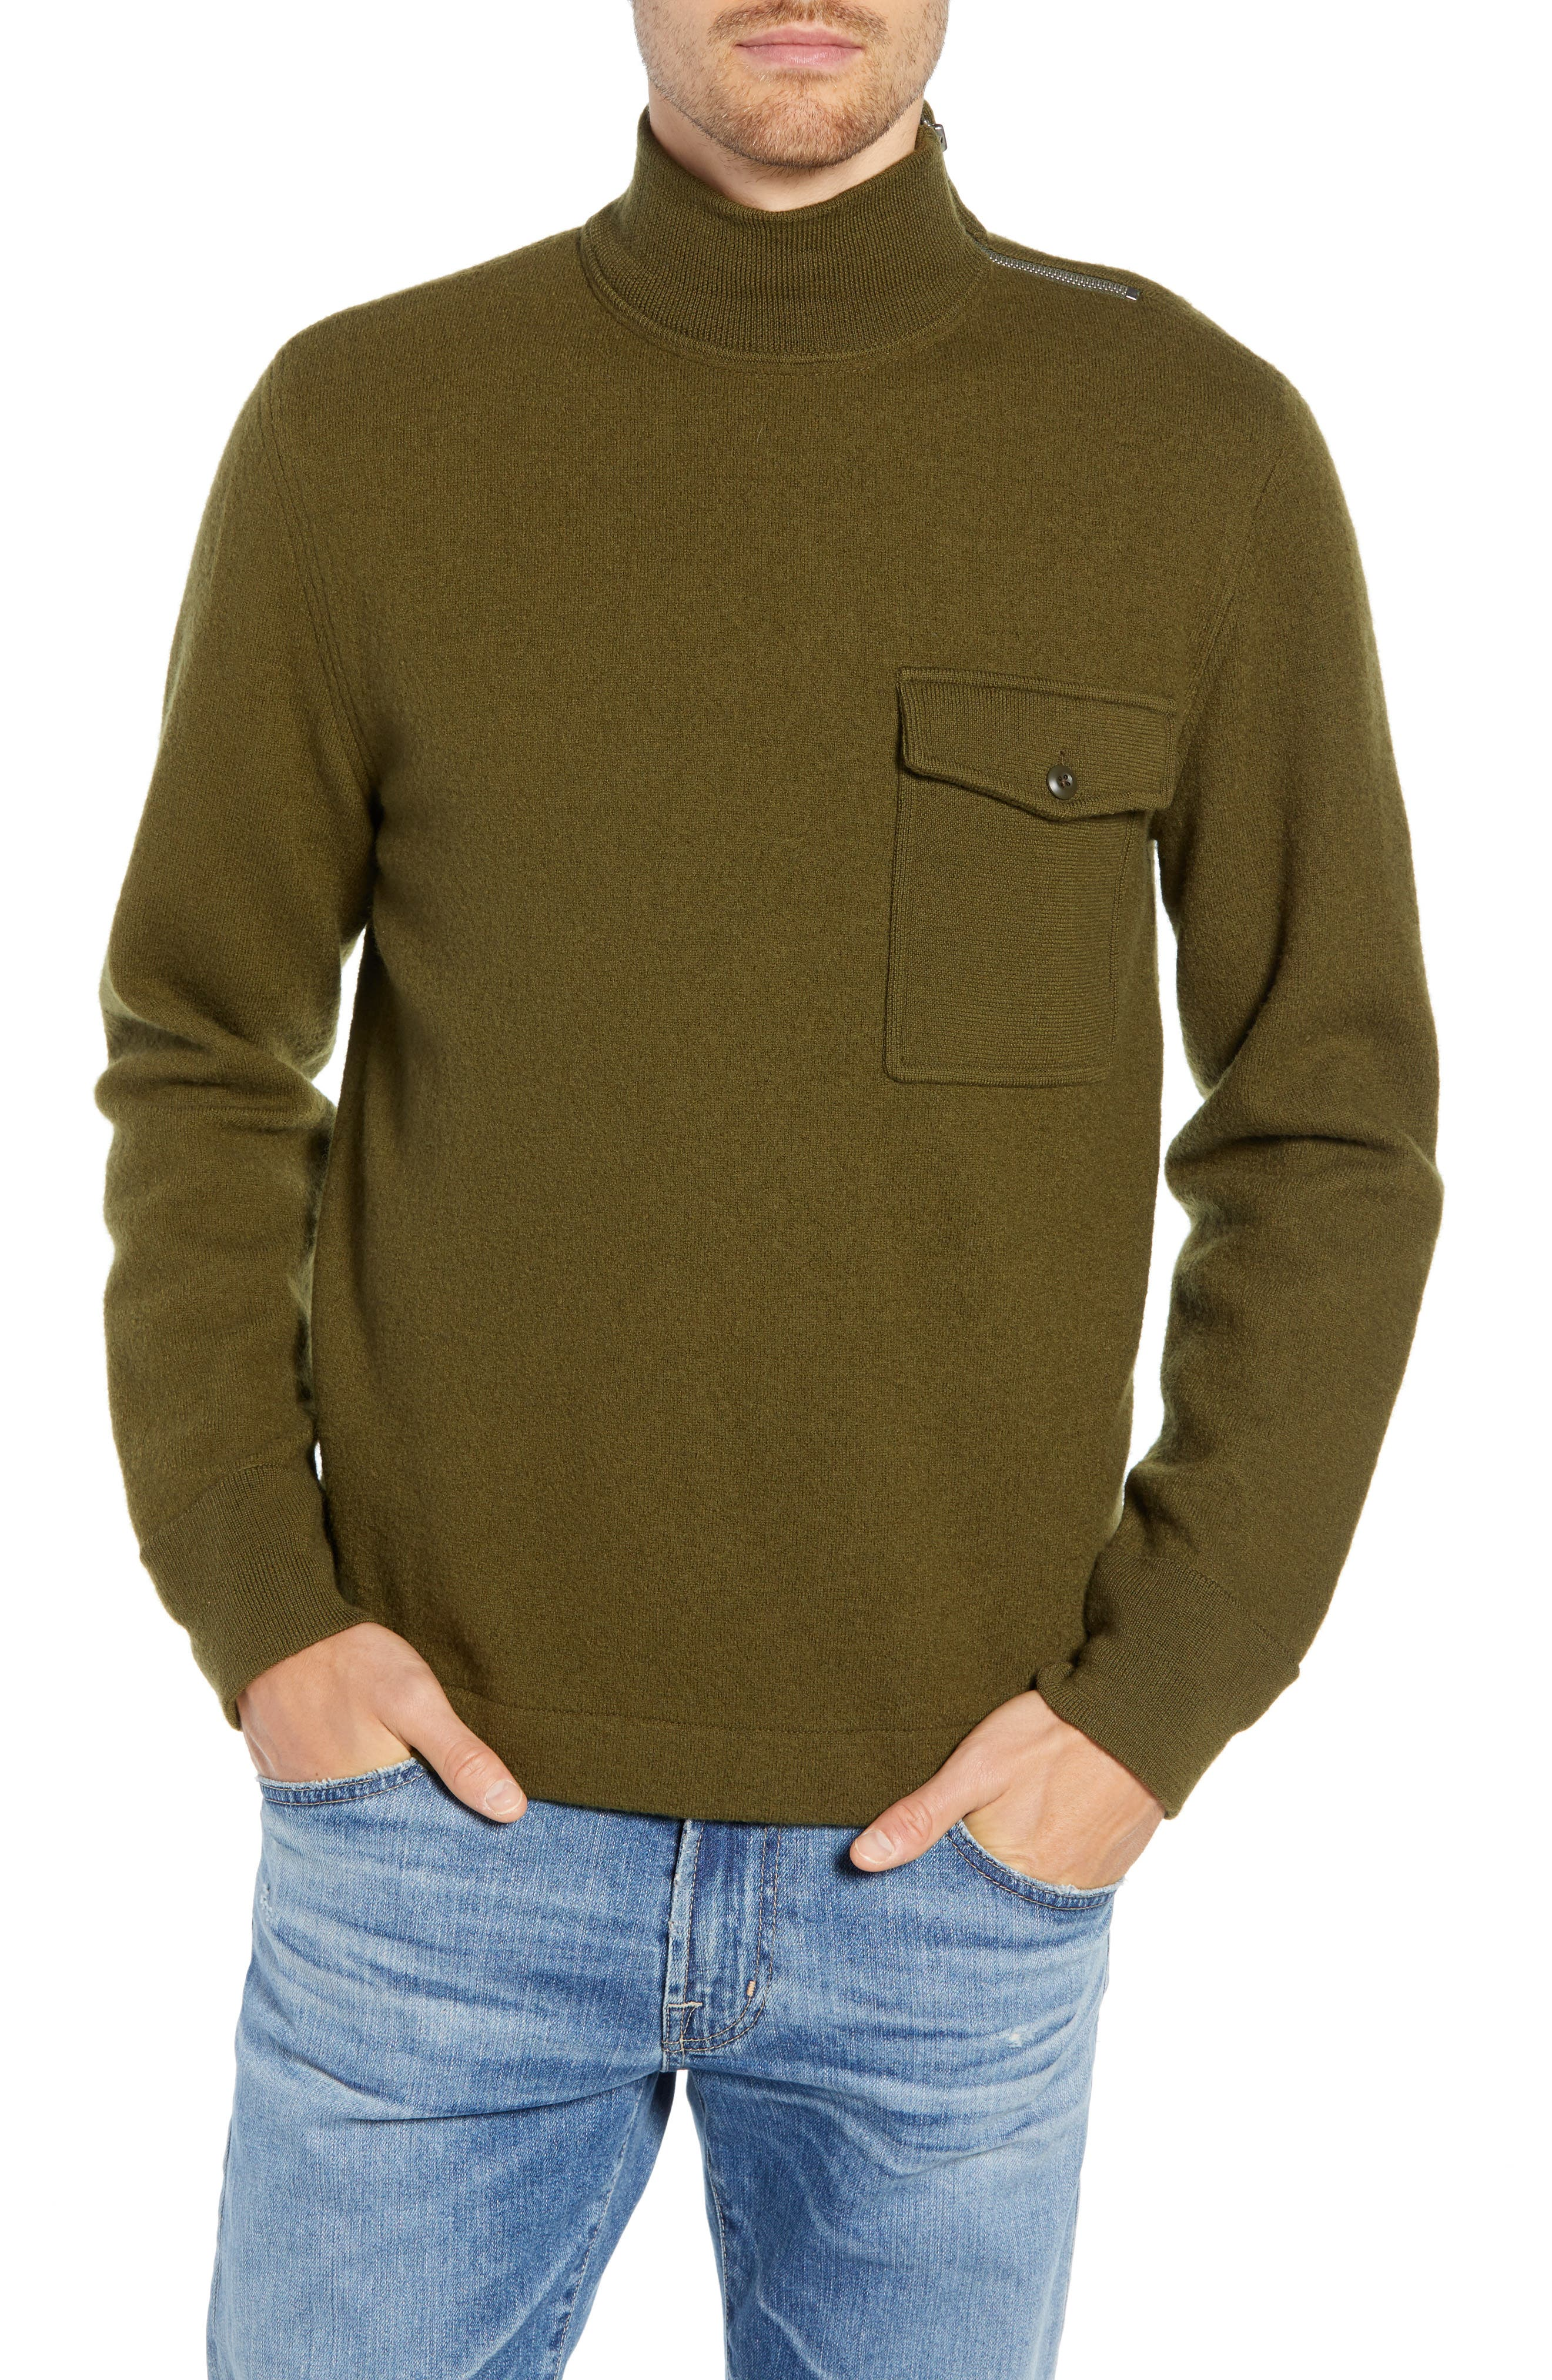 J.crew Wallace & Barnes Felted Merino Wool Mock Neck Pullover, Green